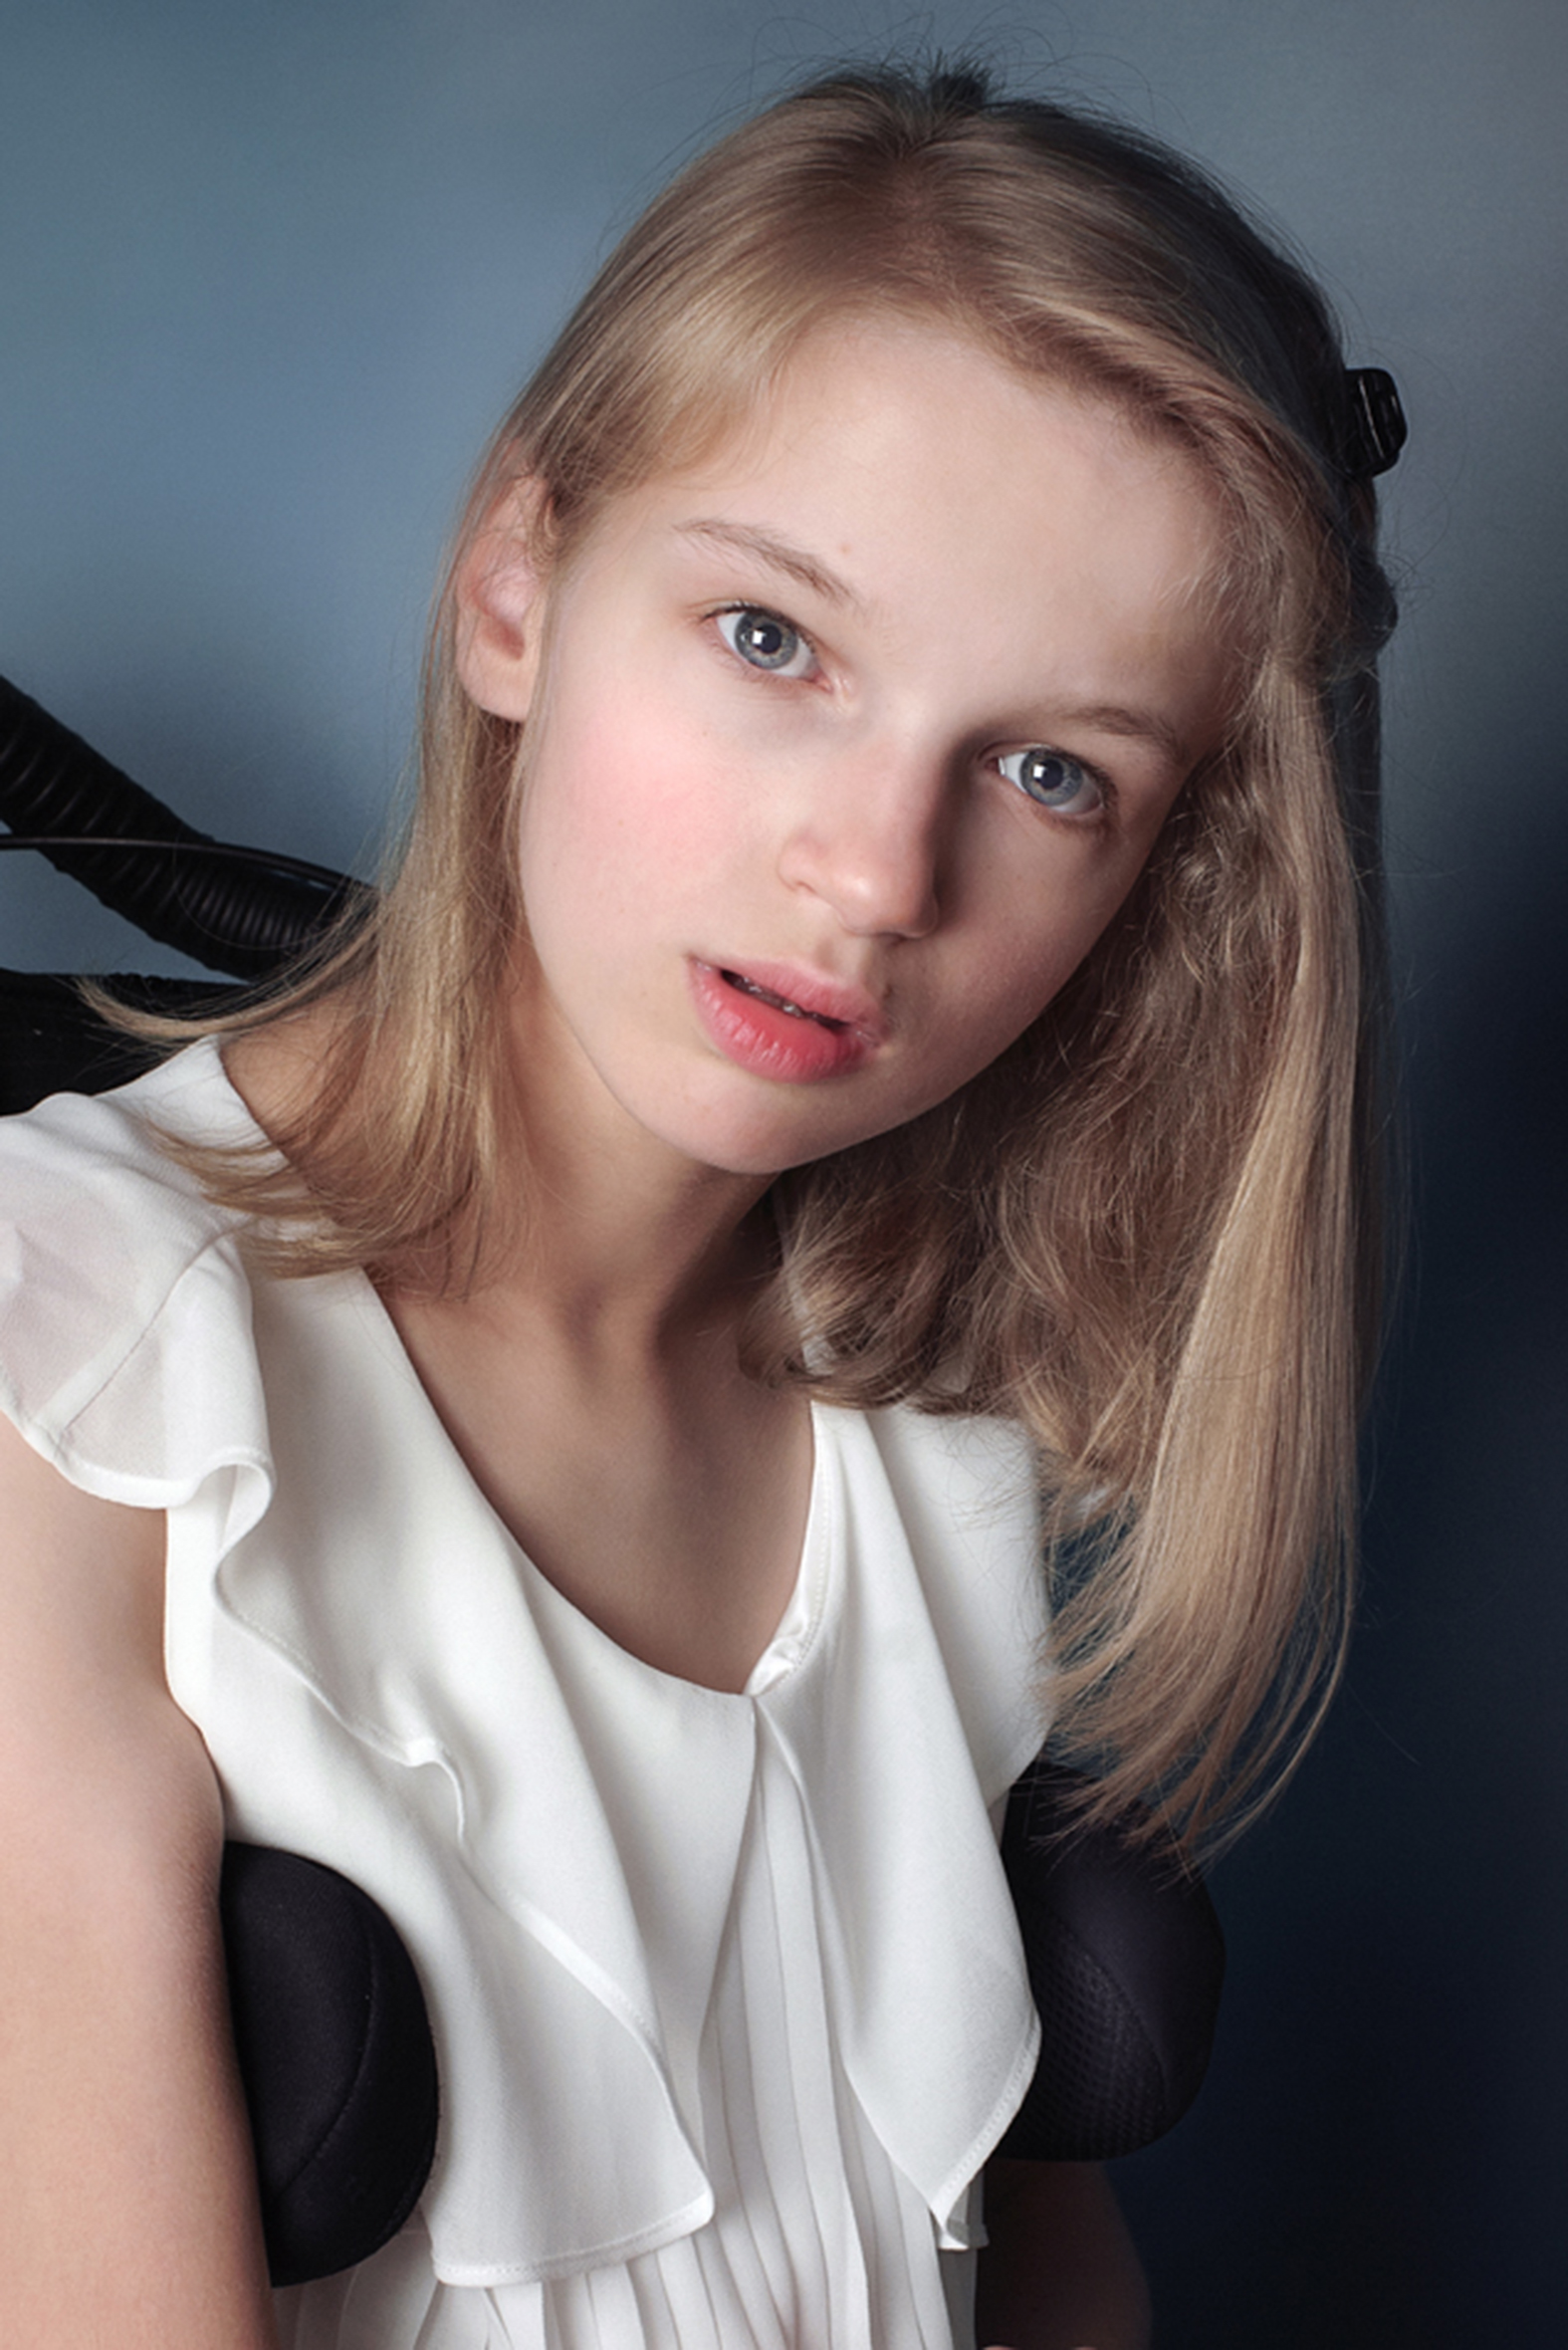 Holly, Cerebral Palsy, Zebedee Management, disabled, model agency, disability, baby (2)